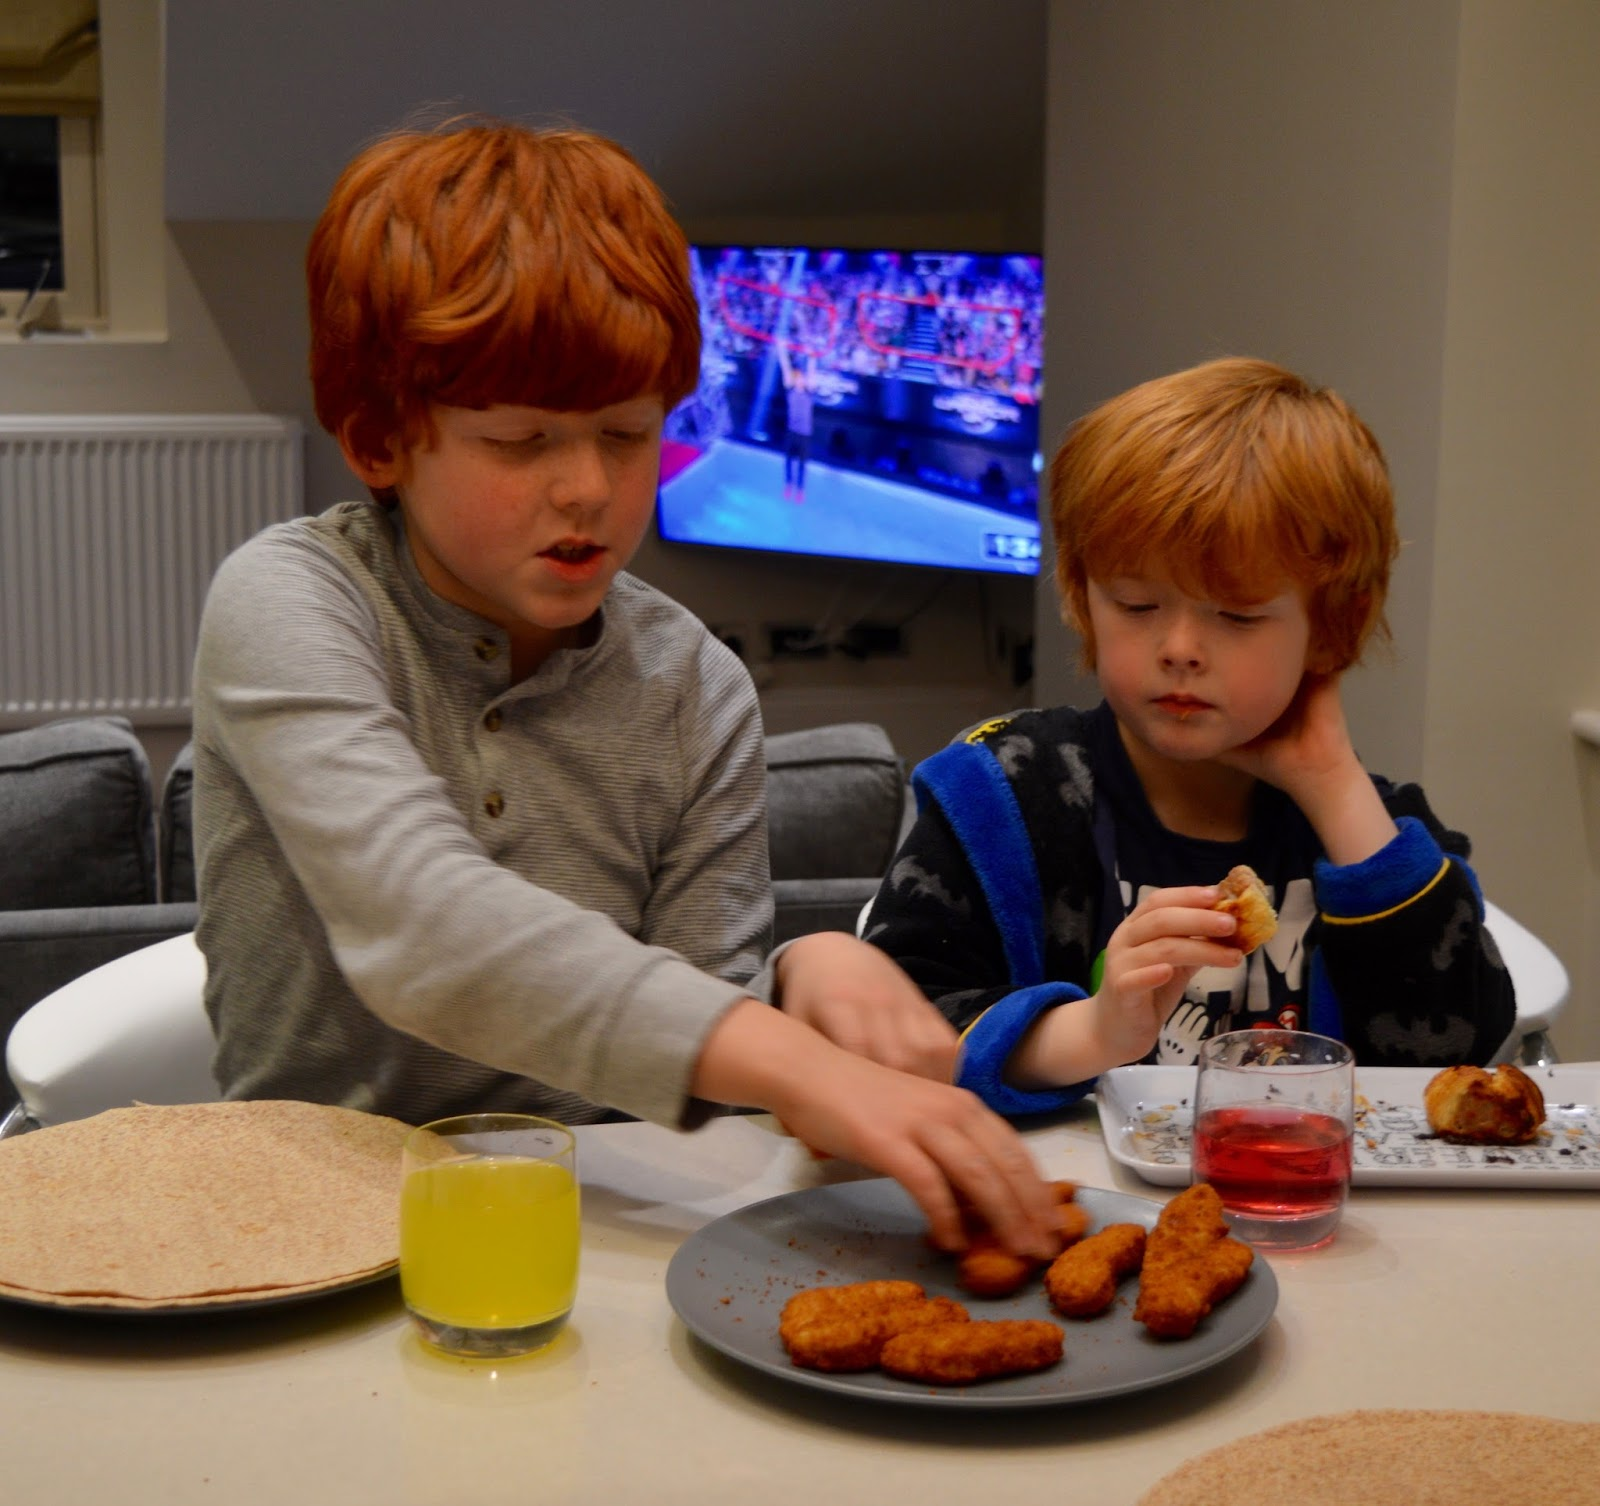 48 Hours in Harrogate with Kids | Harrogate Serviced Apartments Review - make your own fajitas